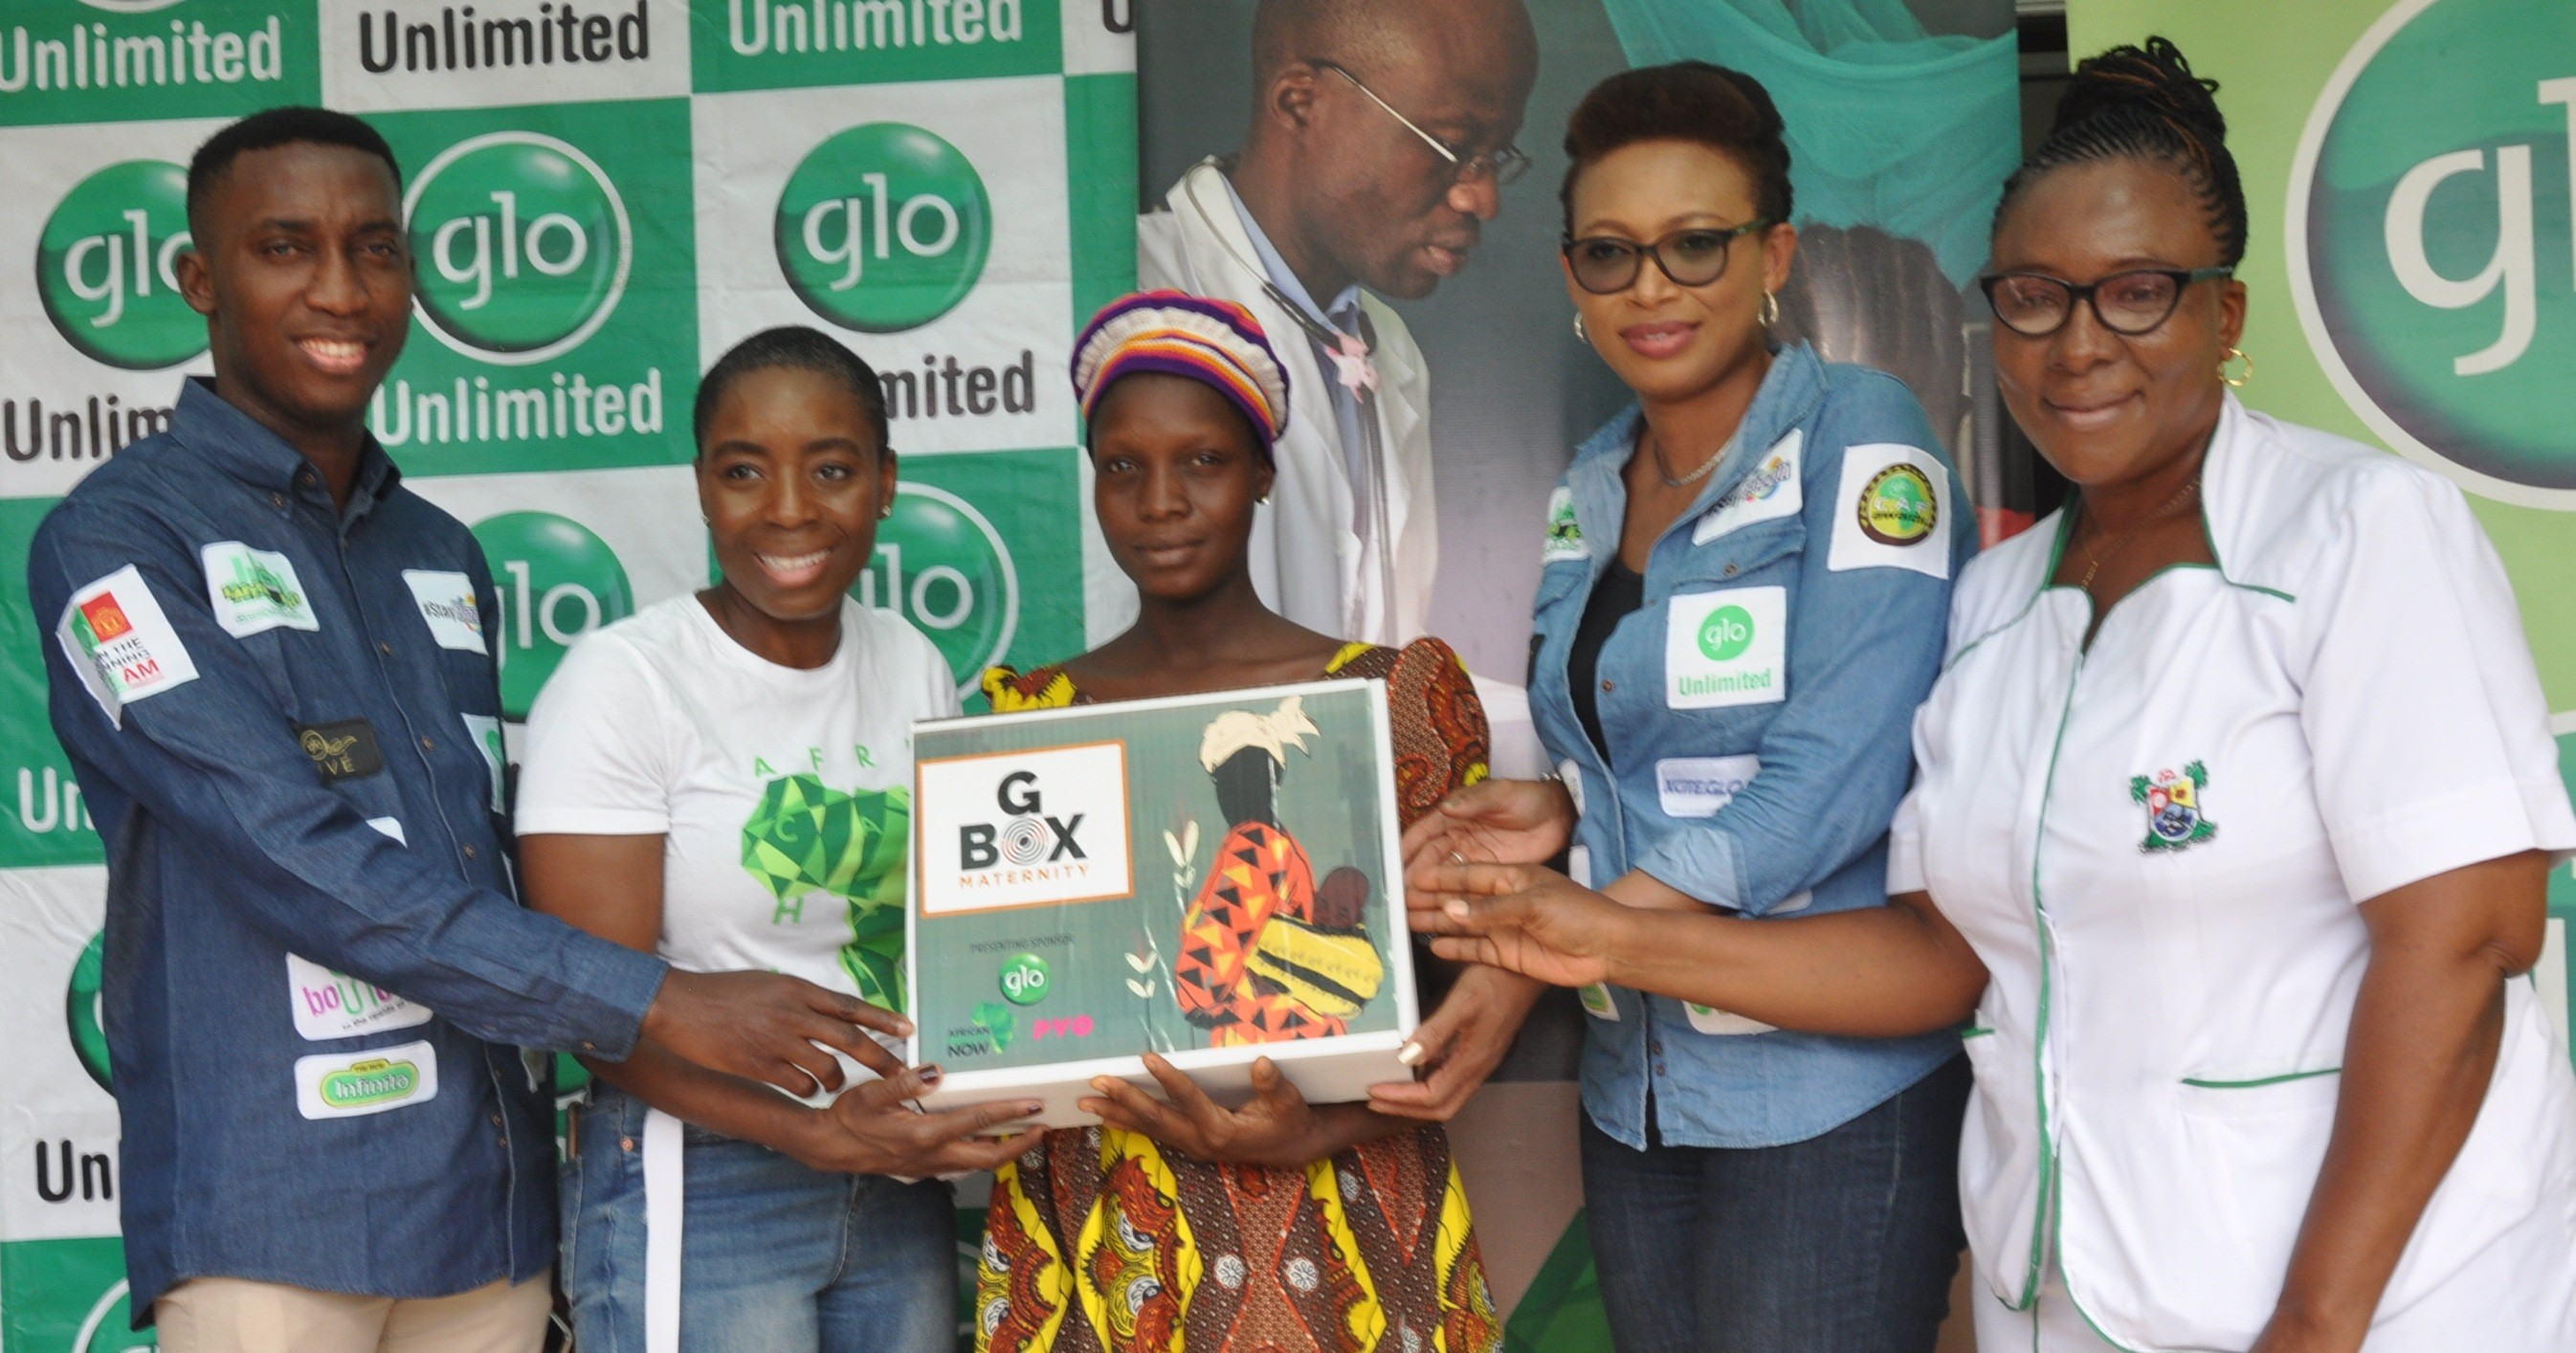 Glo, African Health now distribute maternity kits to expectant mother in Lagos